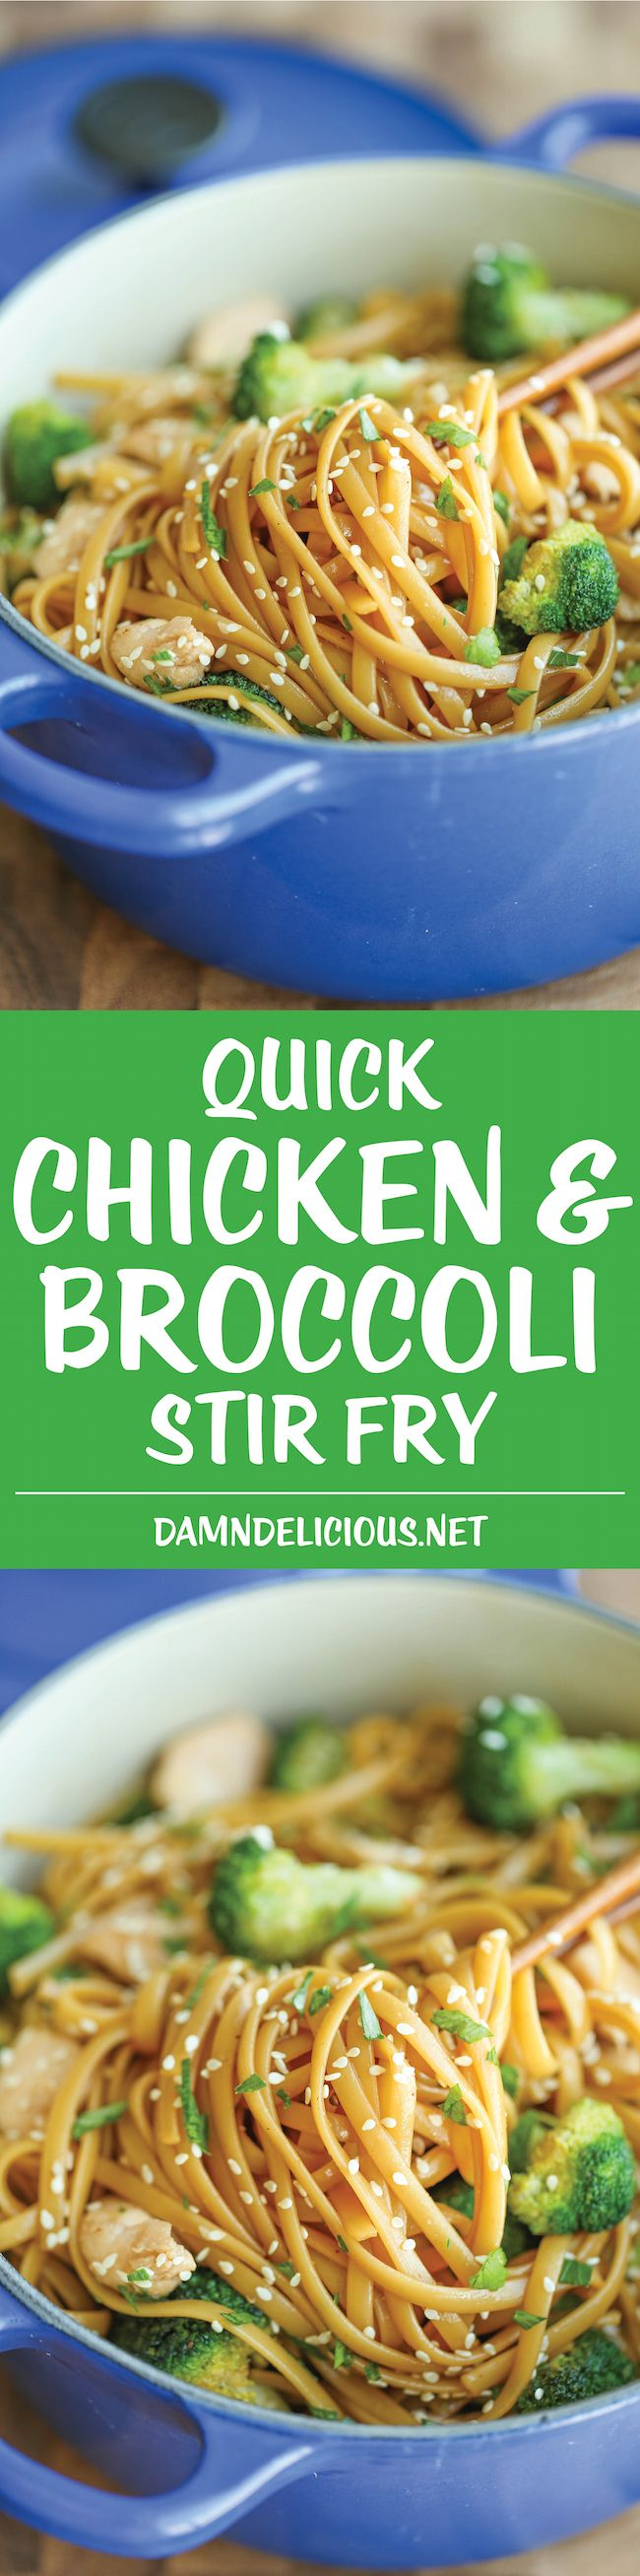 Quick Chicken and Broccoli Stir Fry - A lightning fast noodle stir fry made in just 20 min with simple pantry ingredients. It doesn't get easier or quicker!